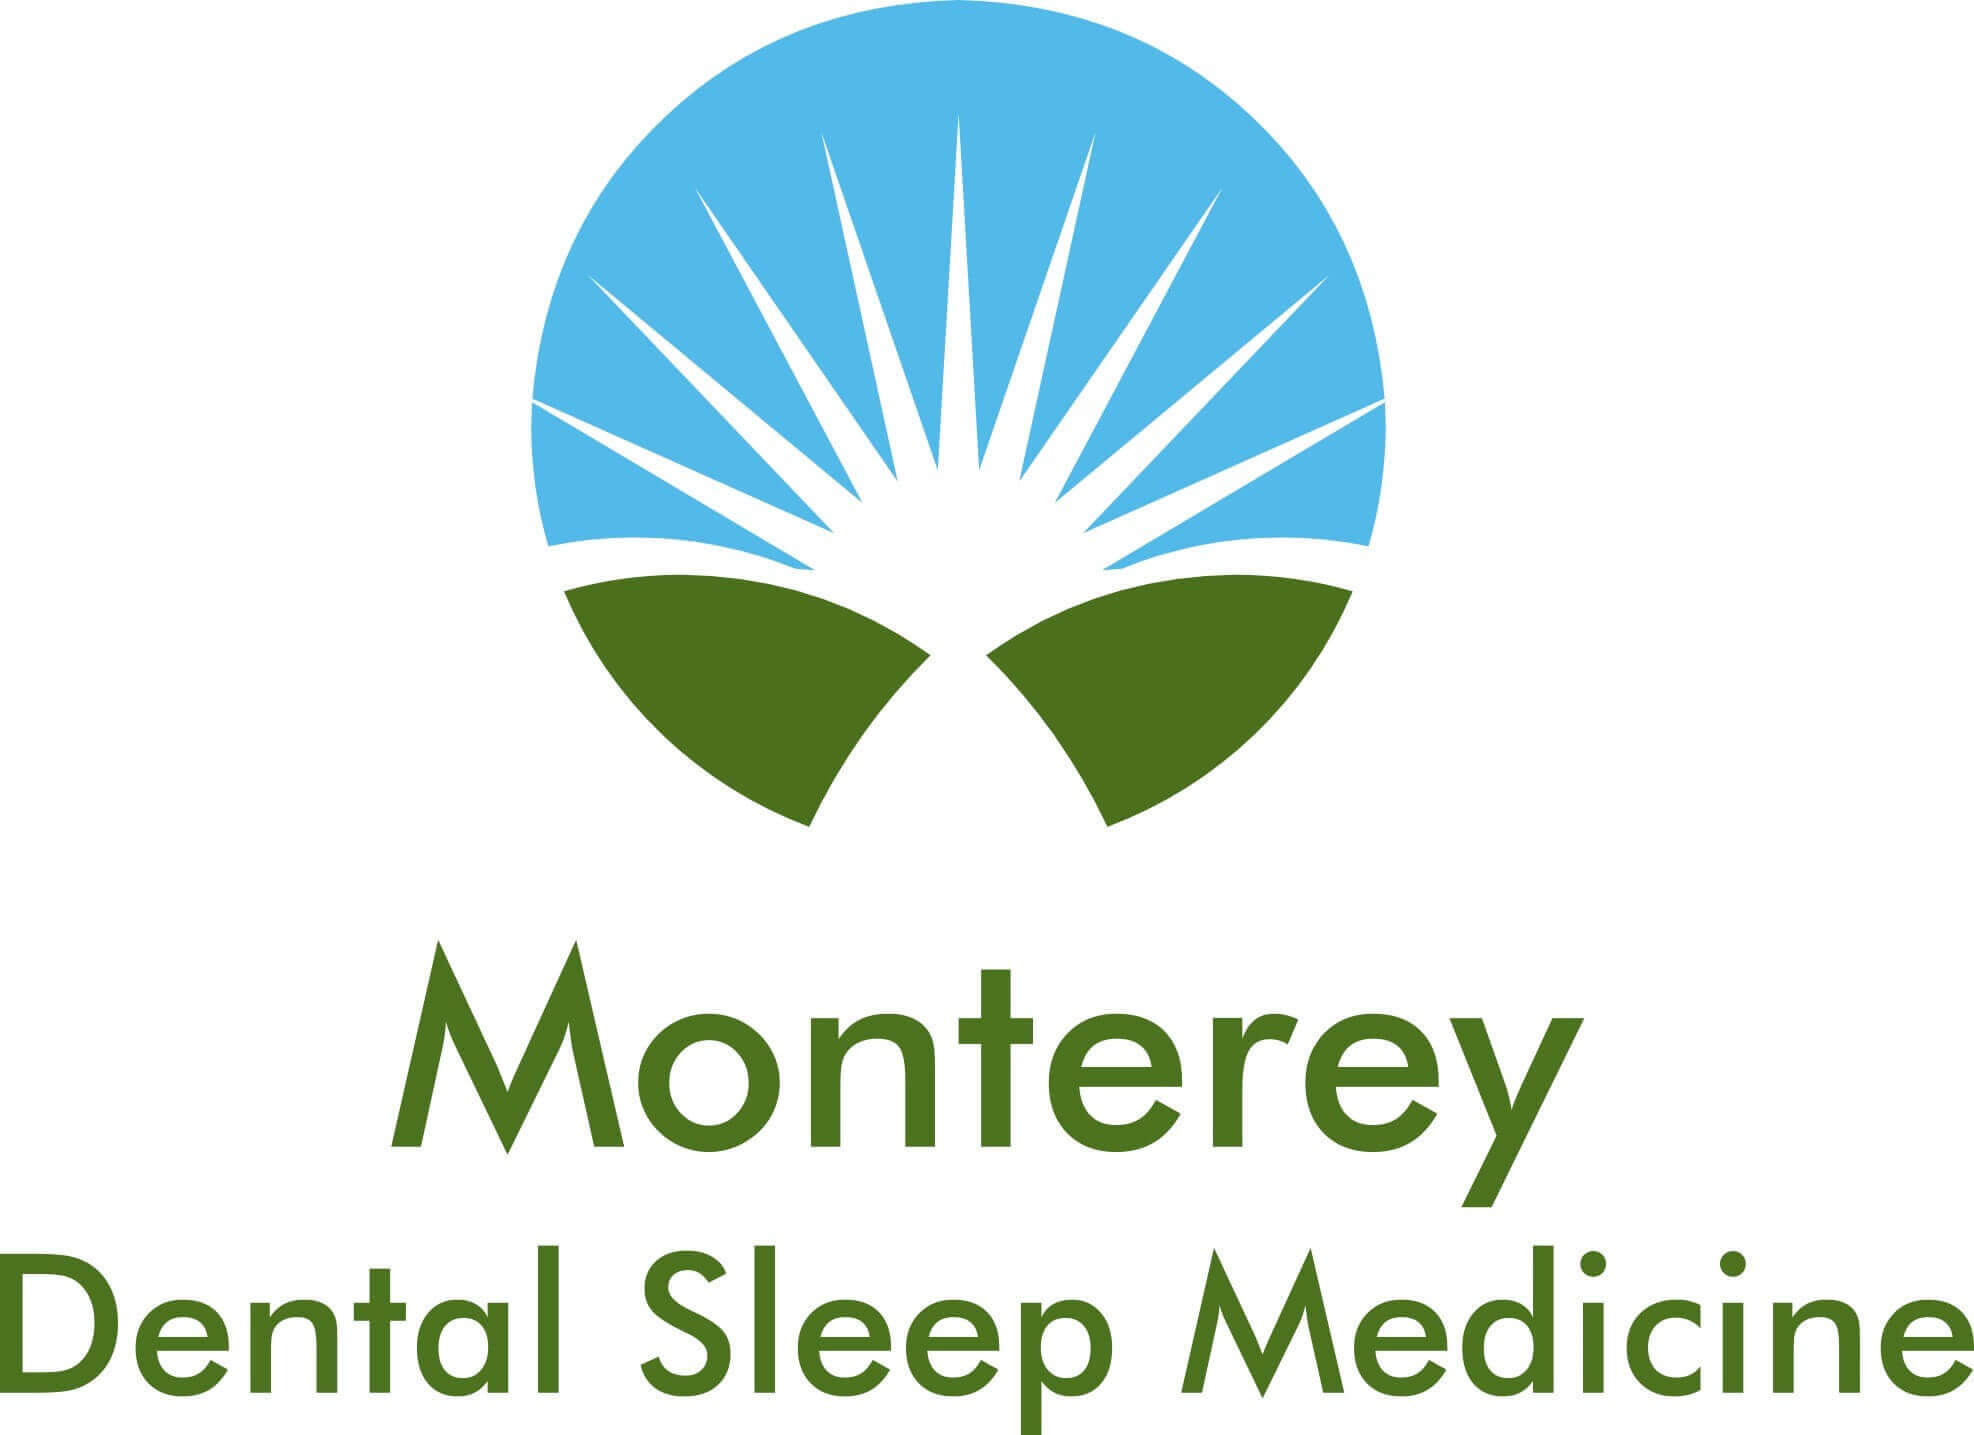 Monterey Dental Sleep